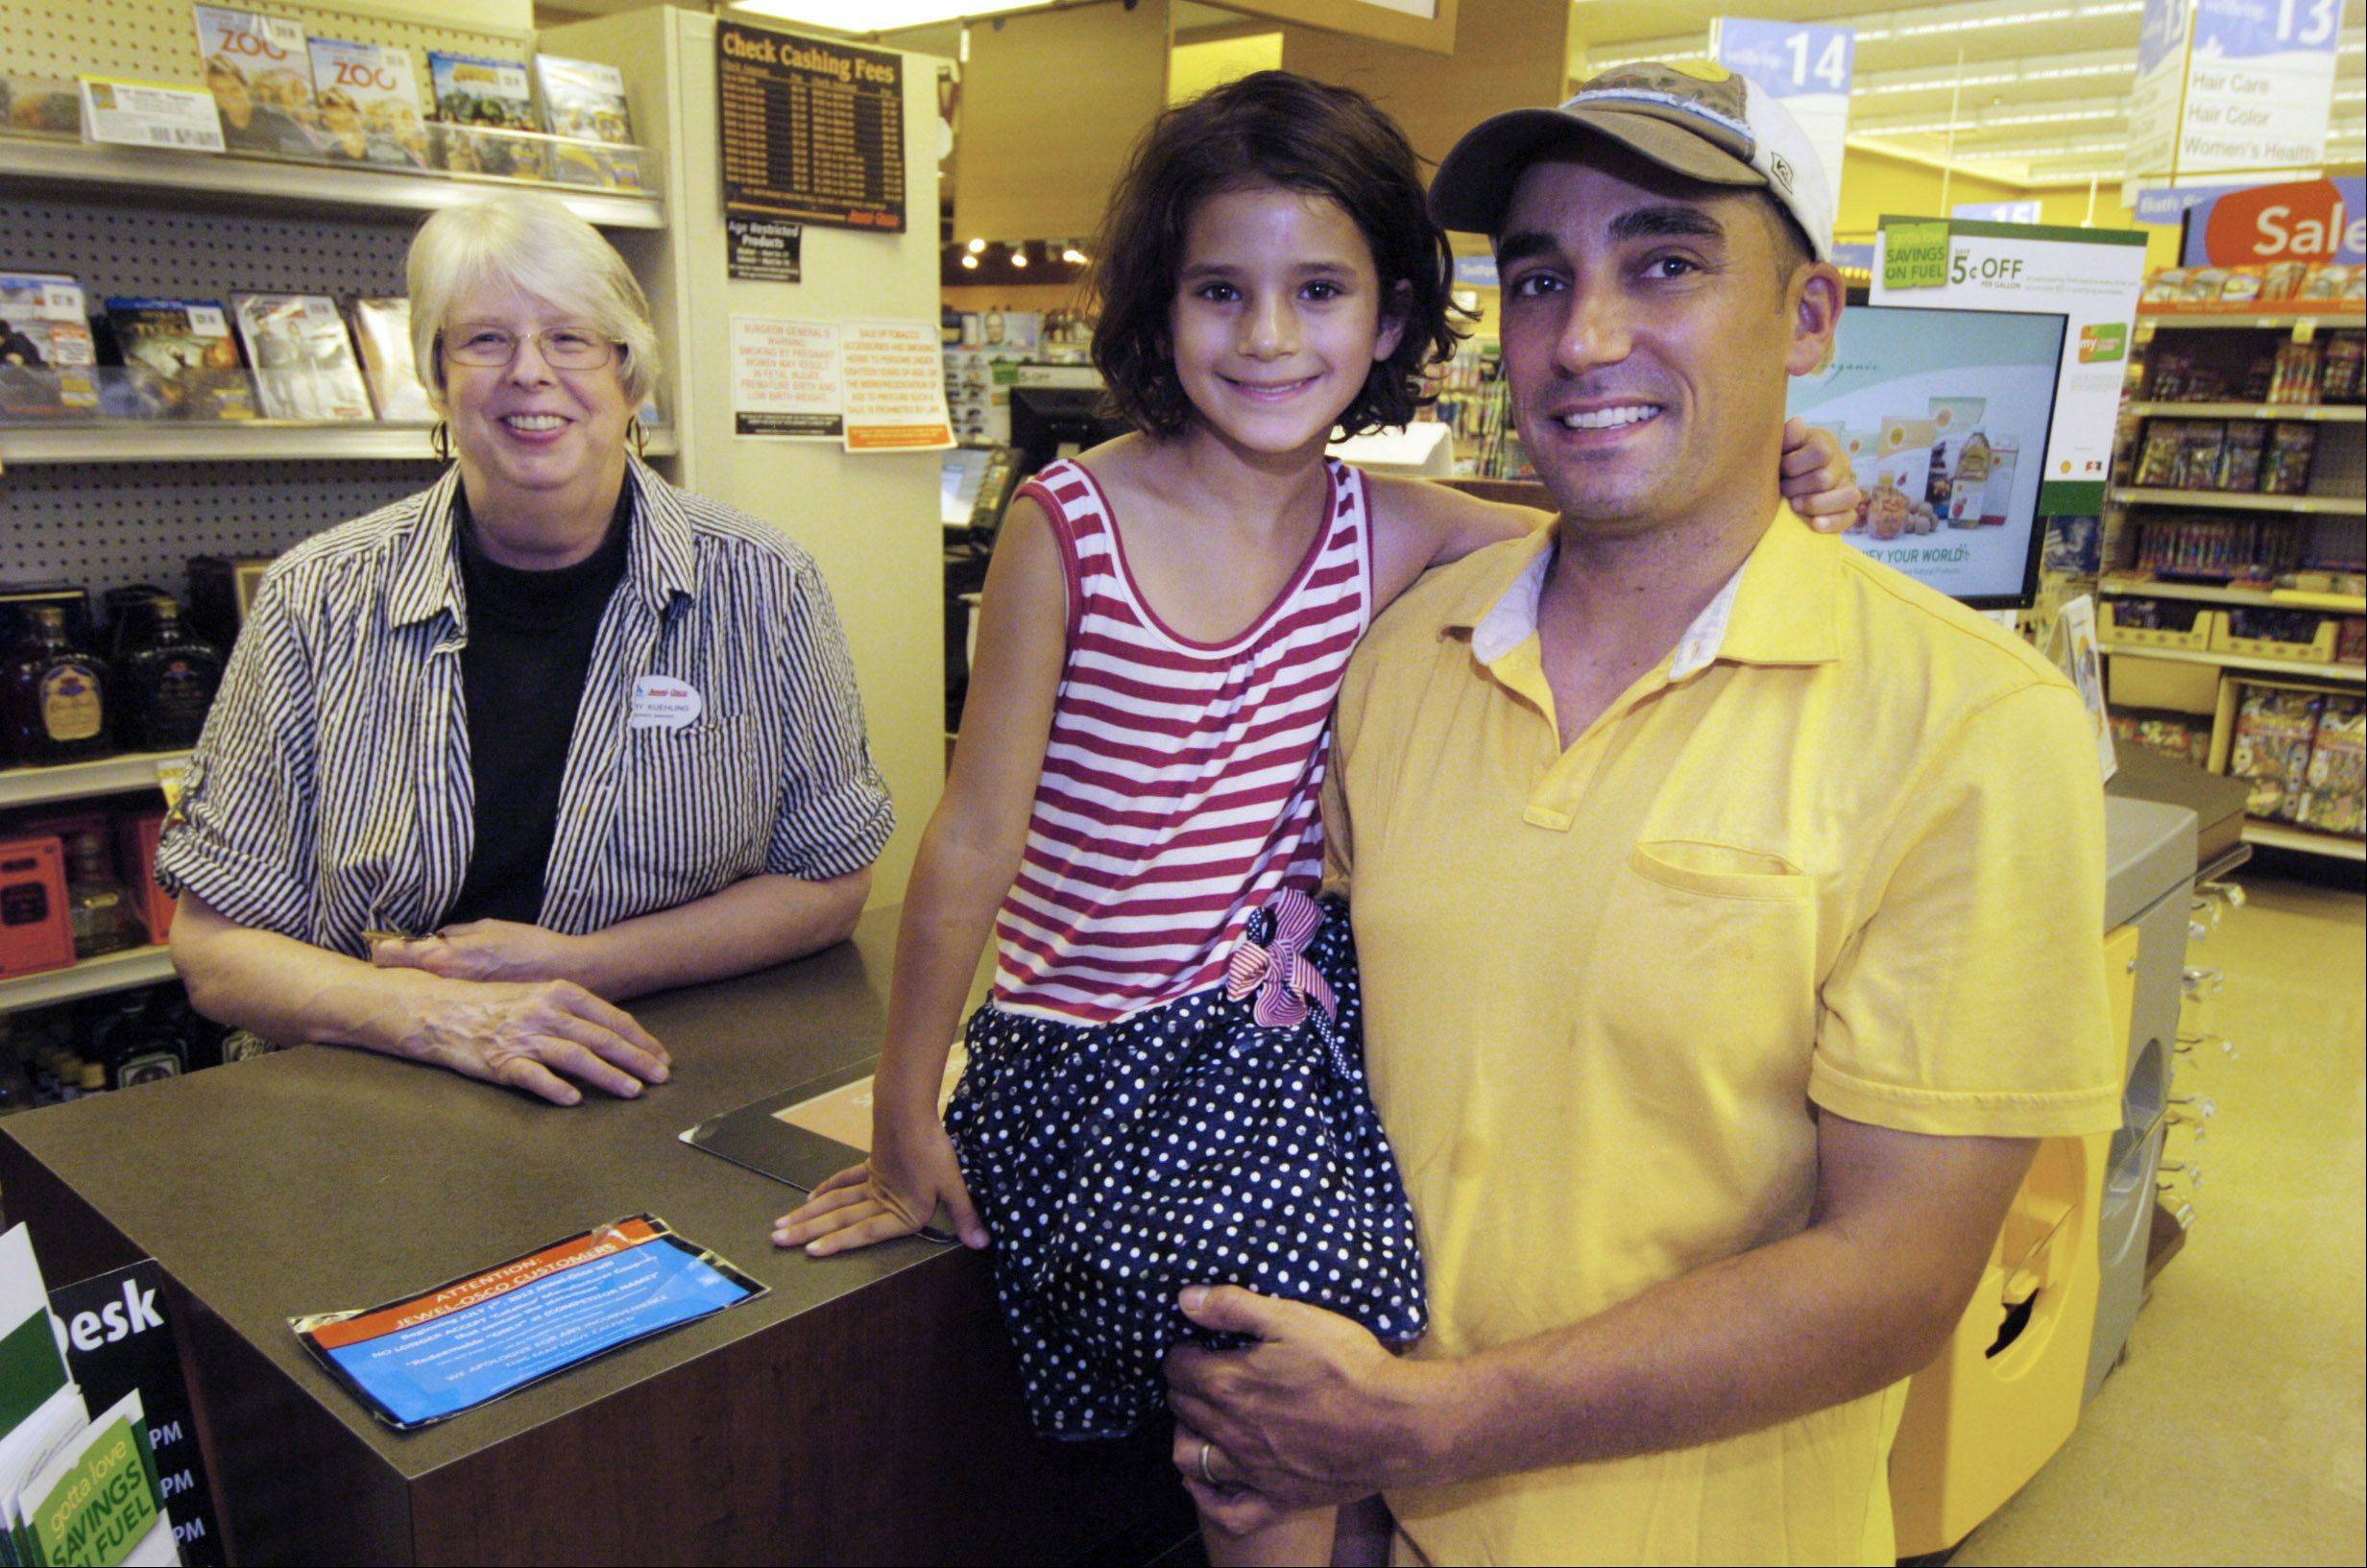 Chris Salituro and his daughter, Livia, with Service Manager Mary Kuehling, who held an envelope of money they had lost at the Vail Street Jewel in Arlington Heights.